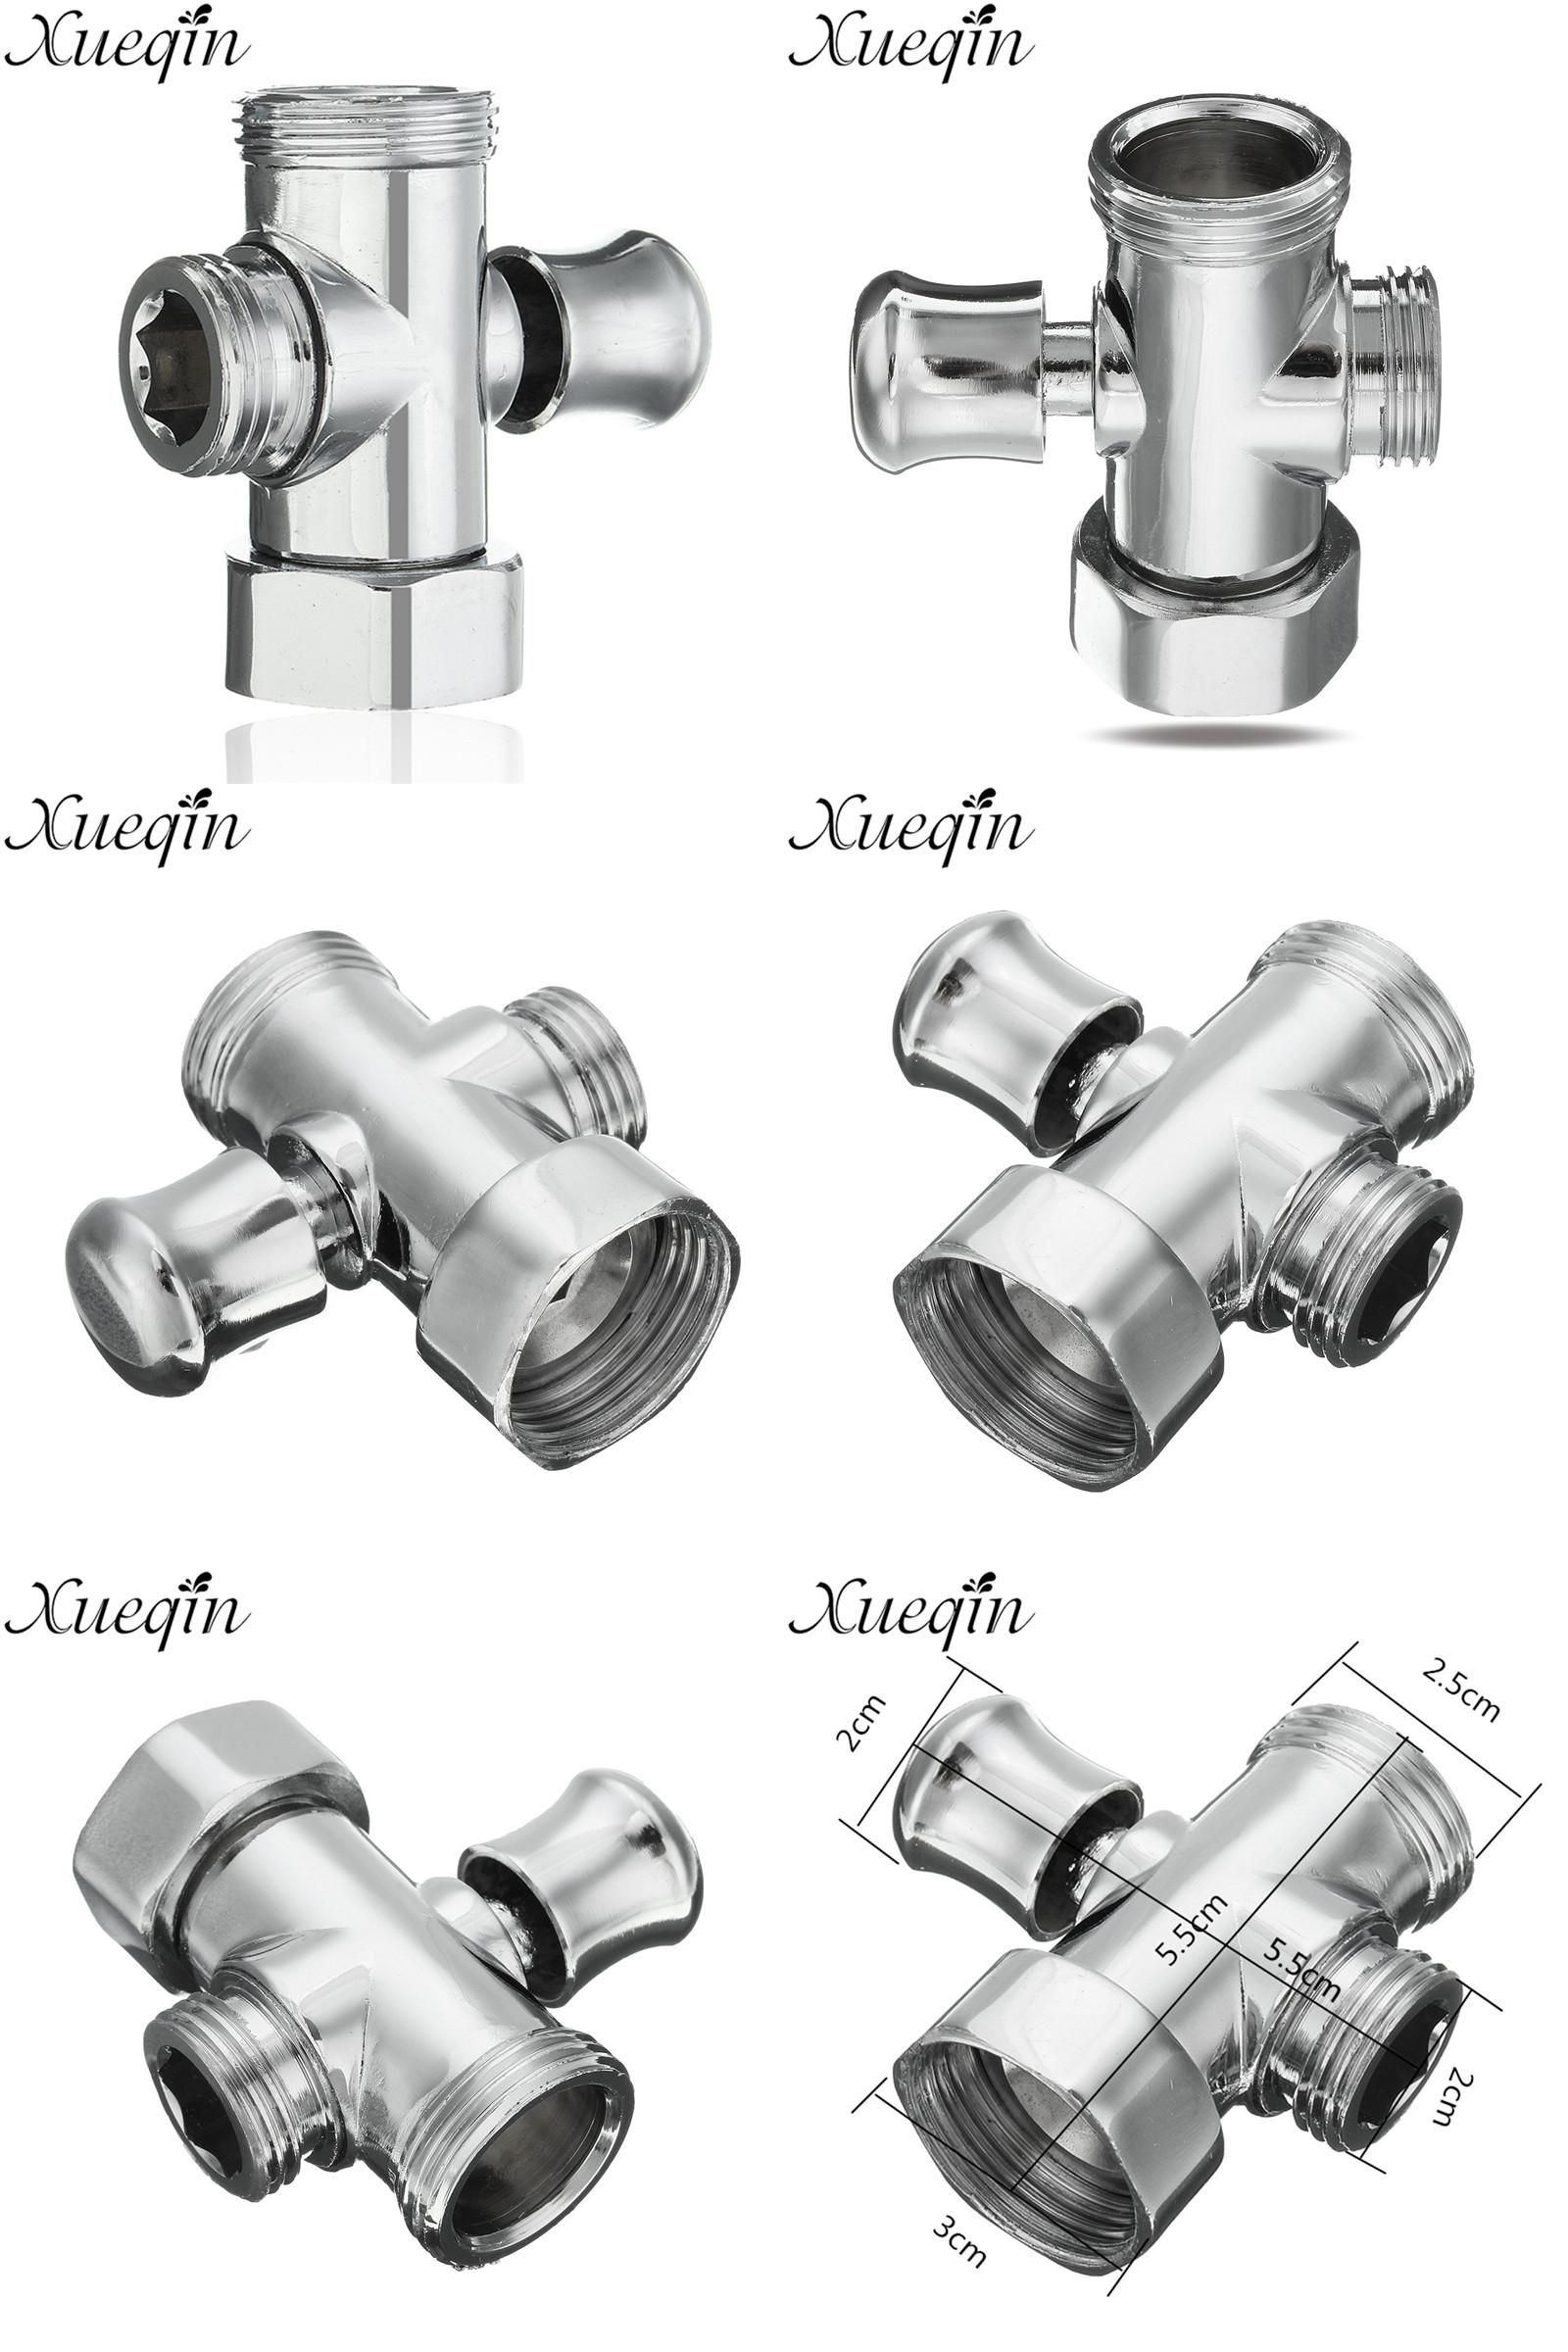 Visit To Buy Xueqin 3 Way Shower Head Diverter Valve 3 4 1 2 Bsp